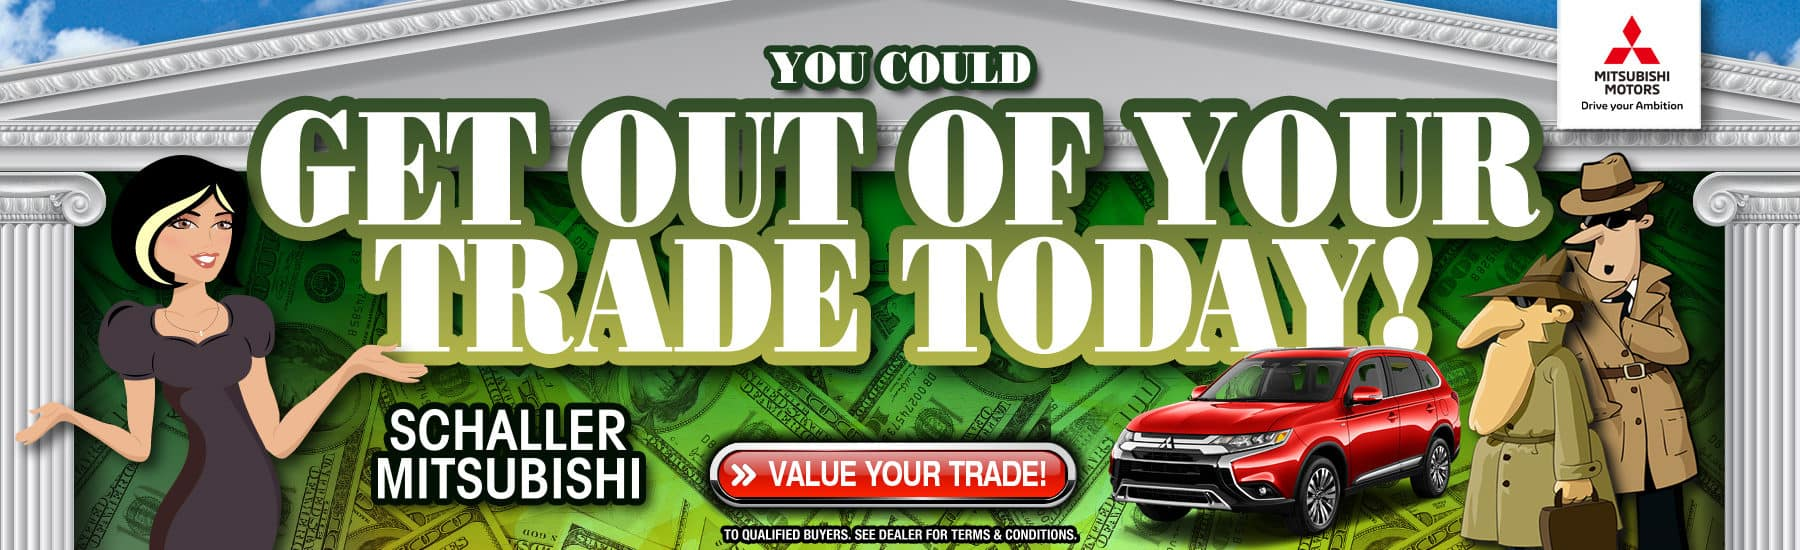 Trade in your old car today at Schaller Mitsubishi